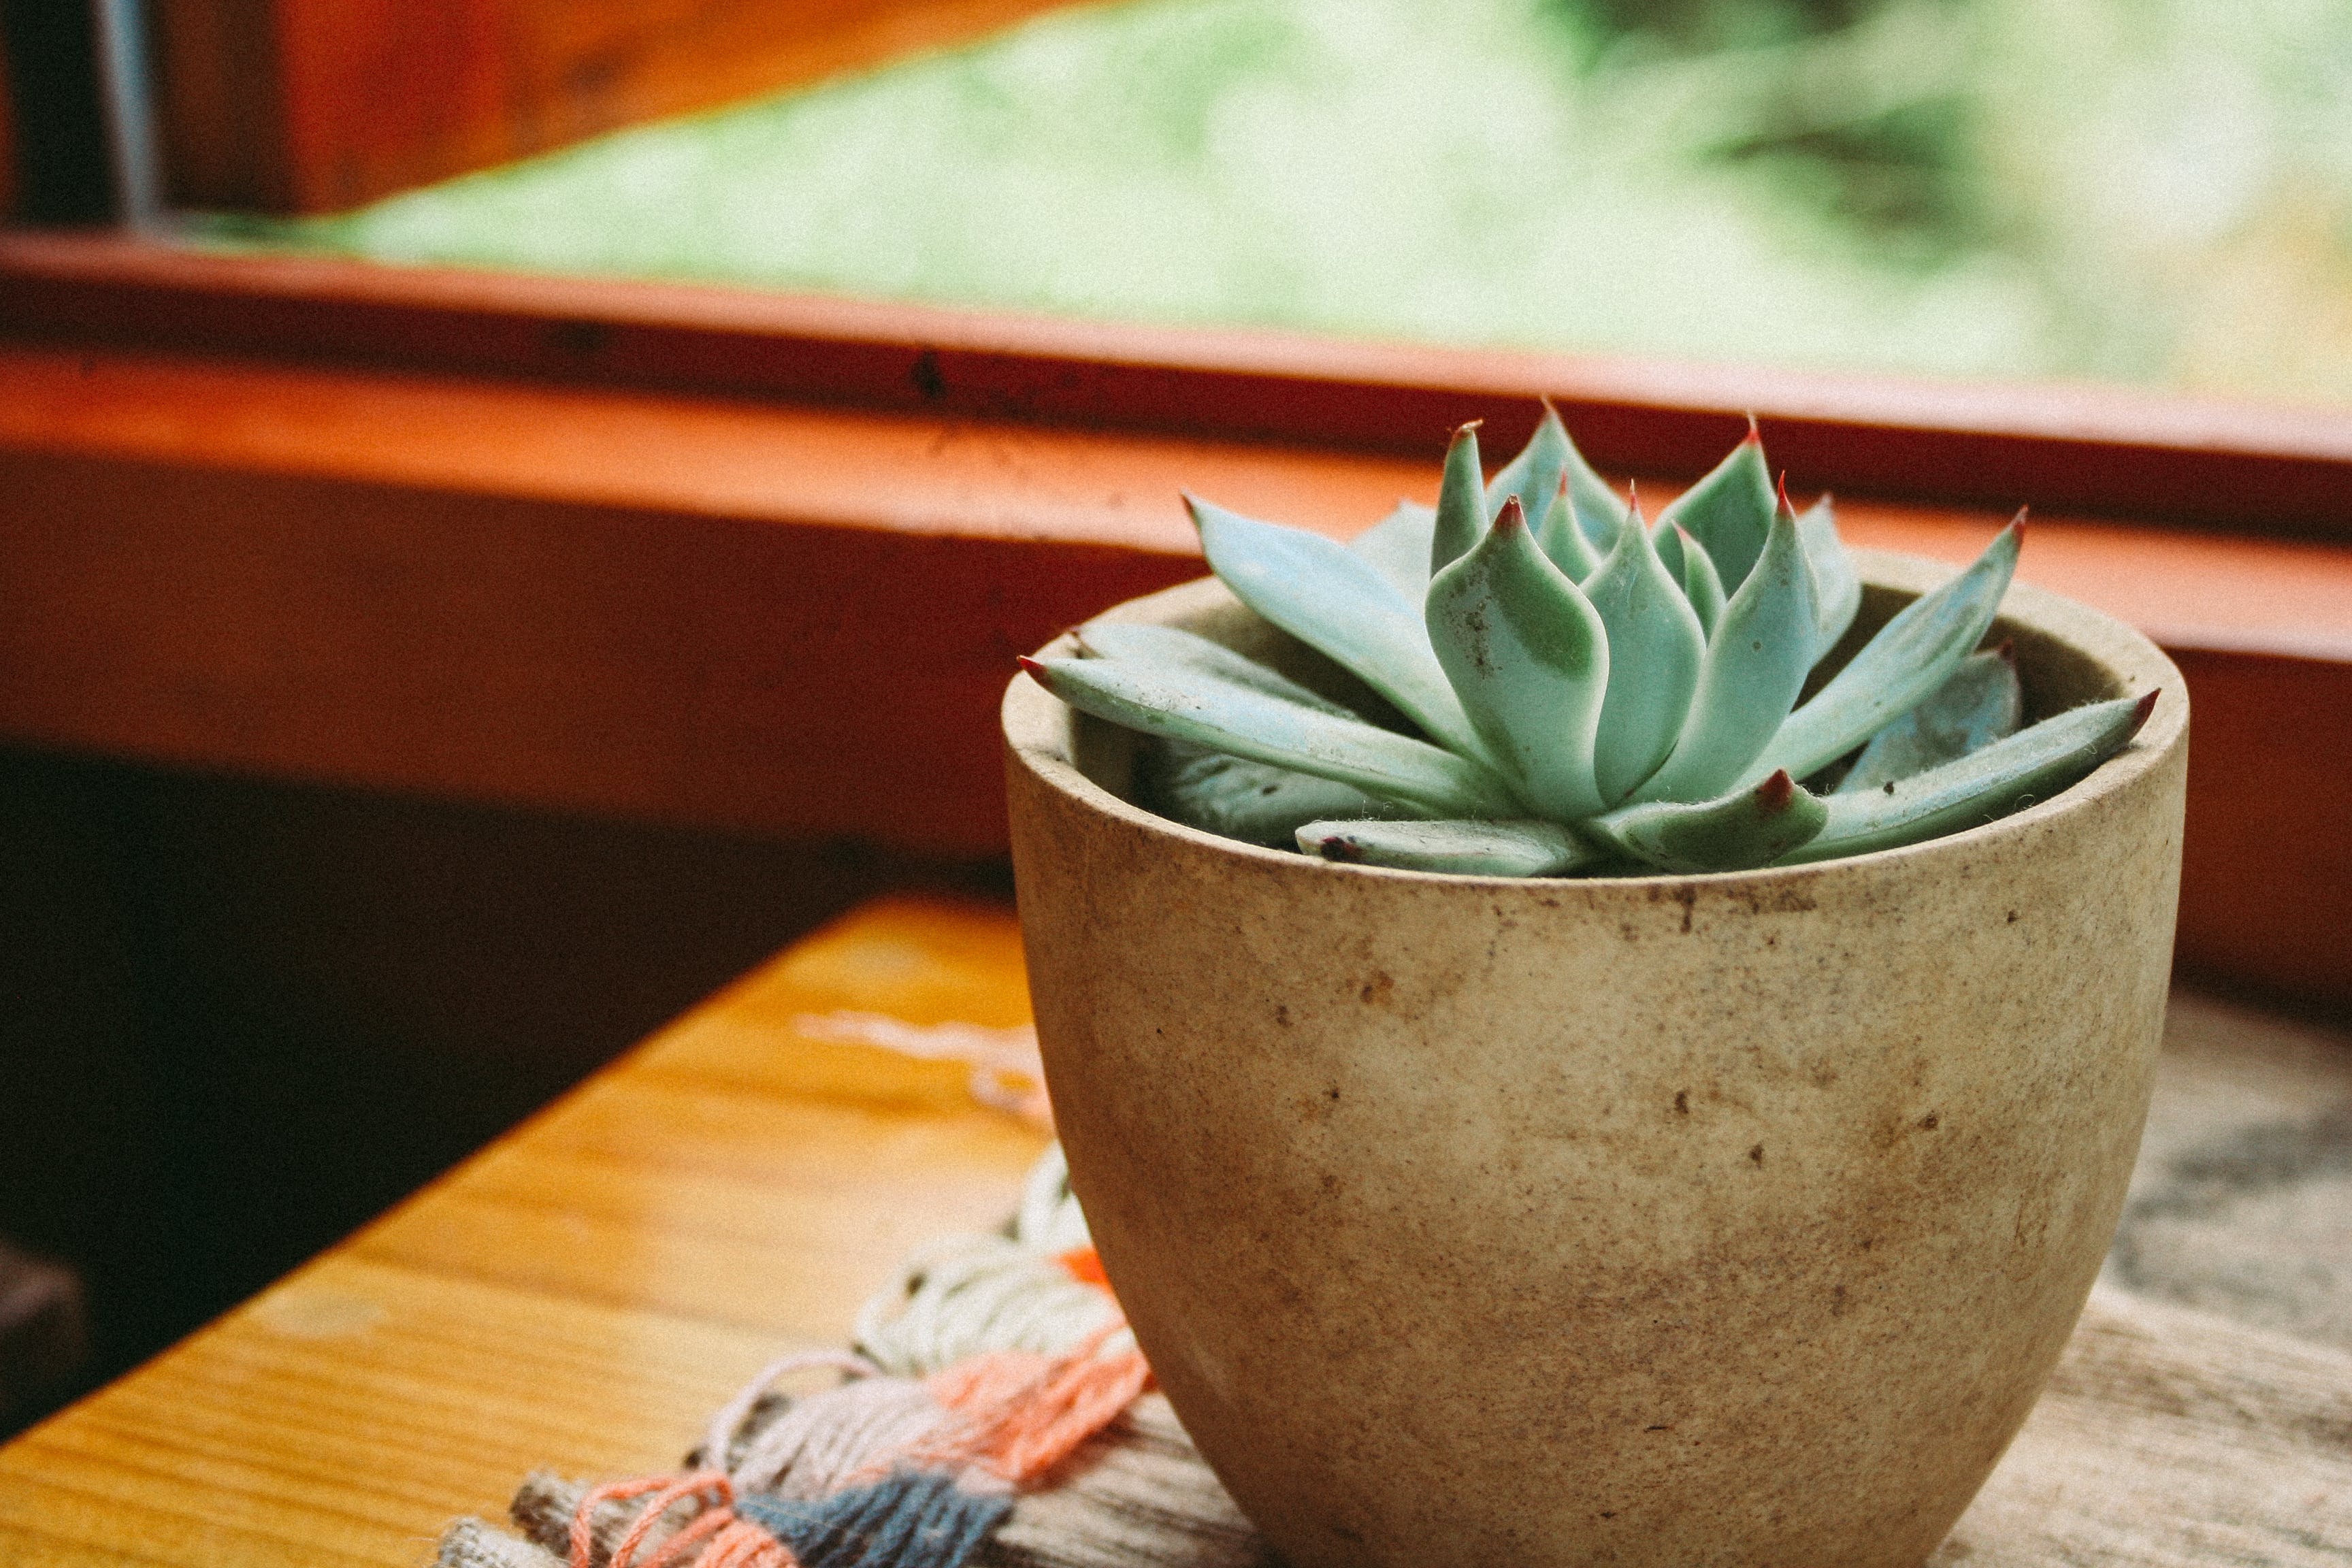 Shallow Focus Photography of Succulent Plant